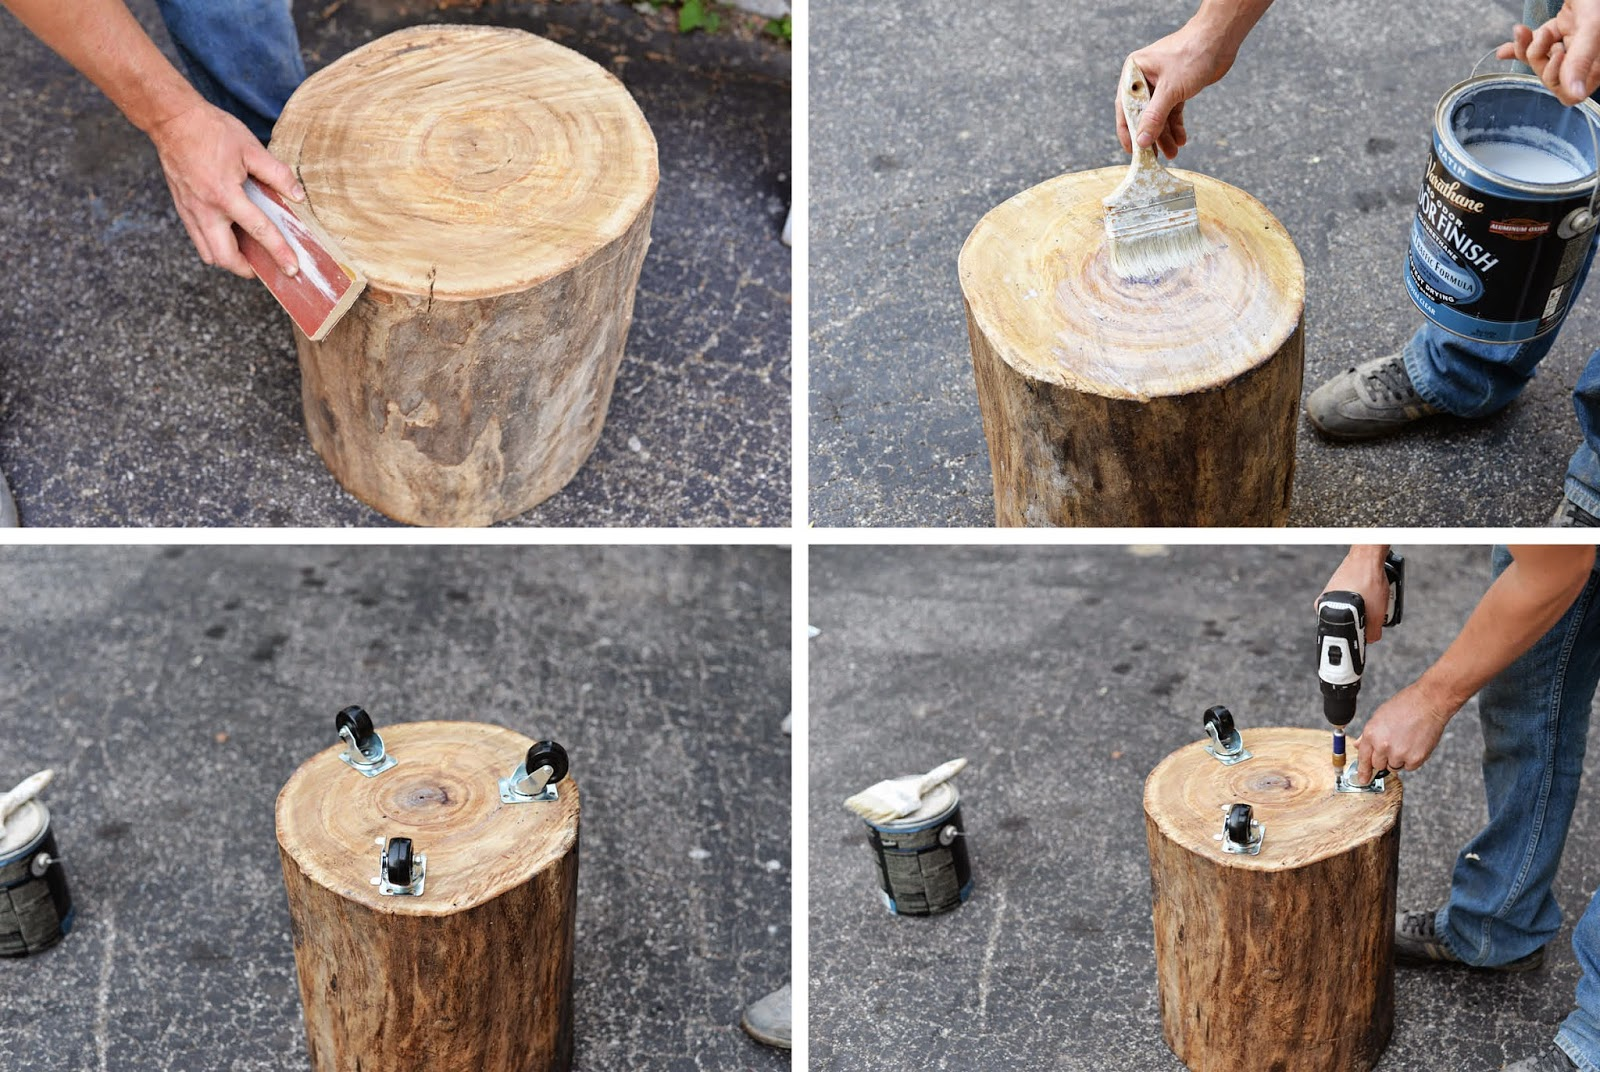 Tree Stump Chairs Knoll Generation Task Chair Diy Side Table Do It Yourself Ideas And Projects